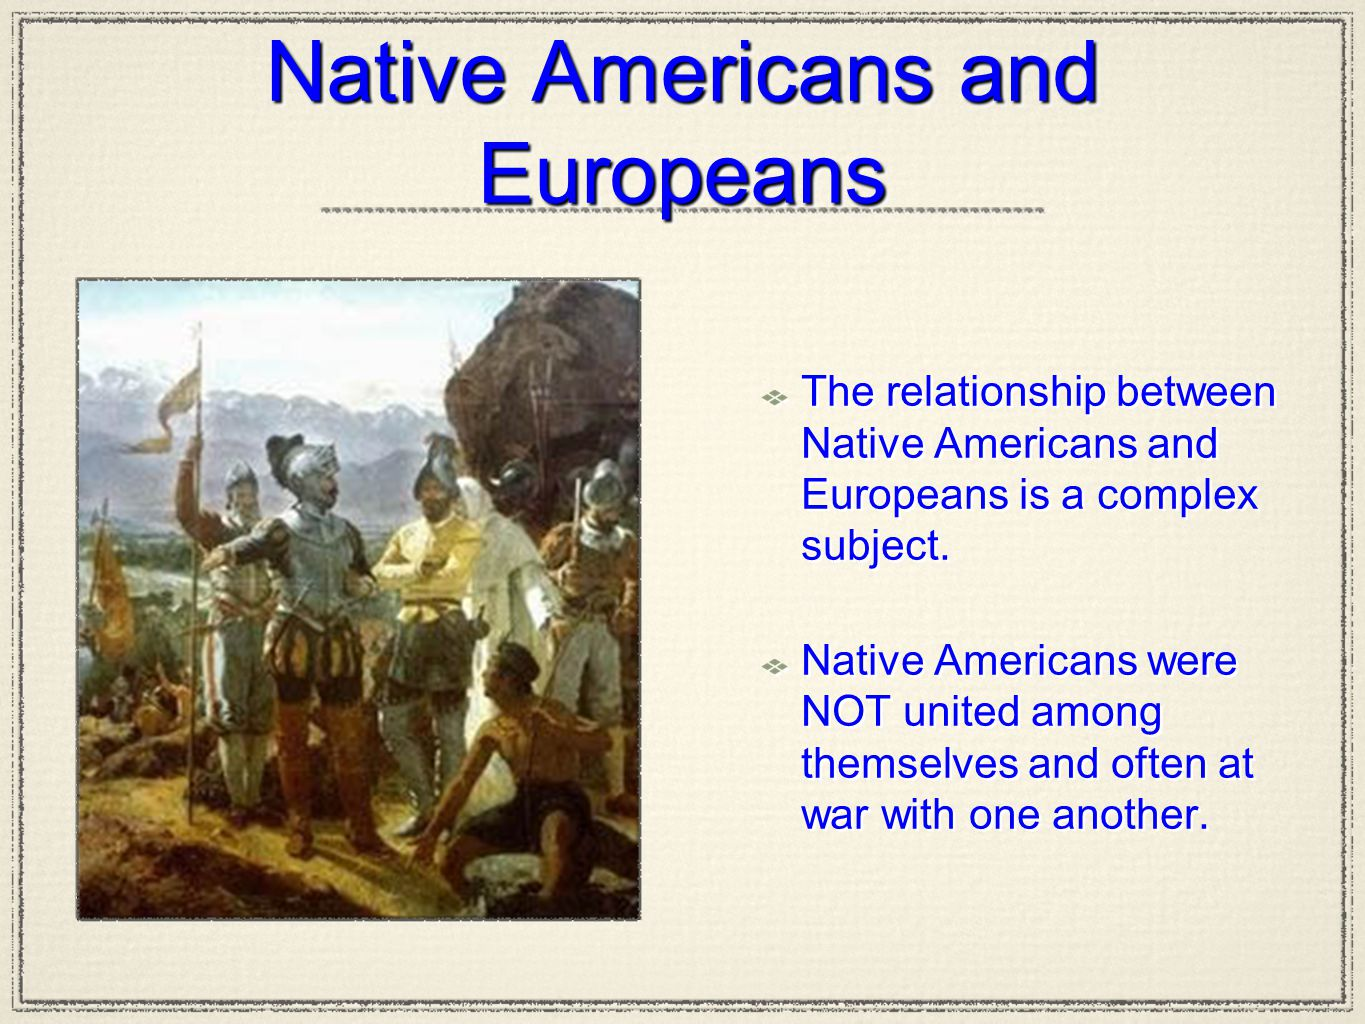 Native Americans and Europeans